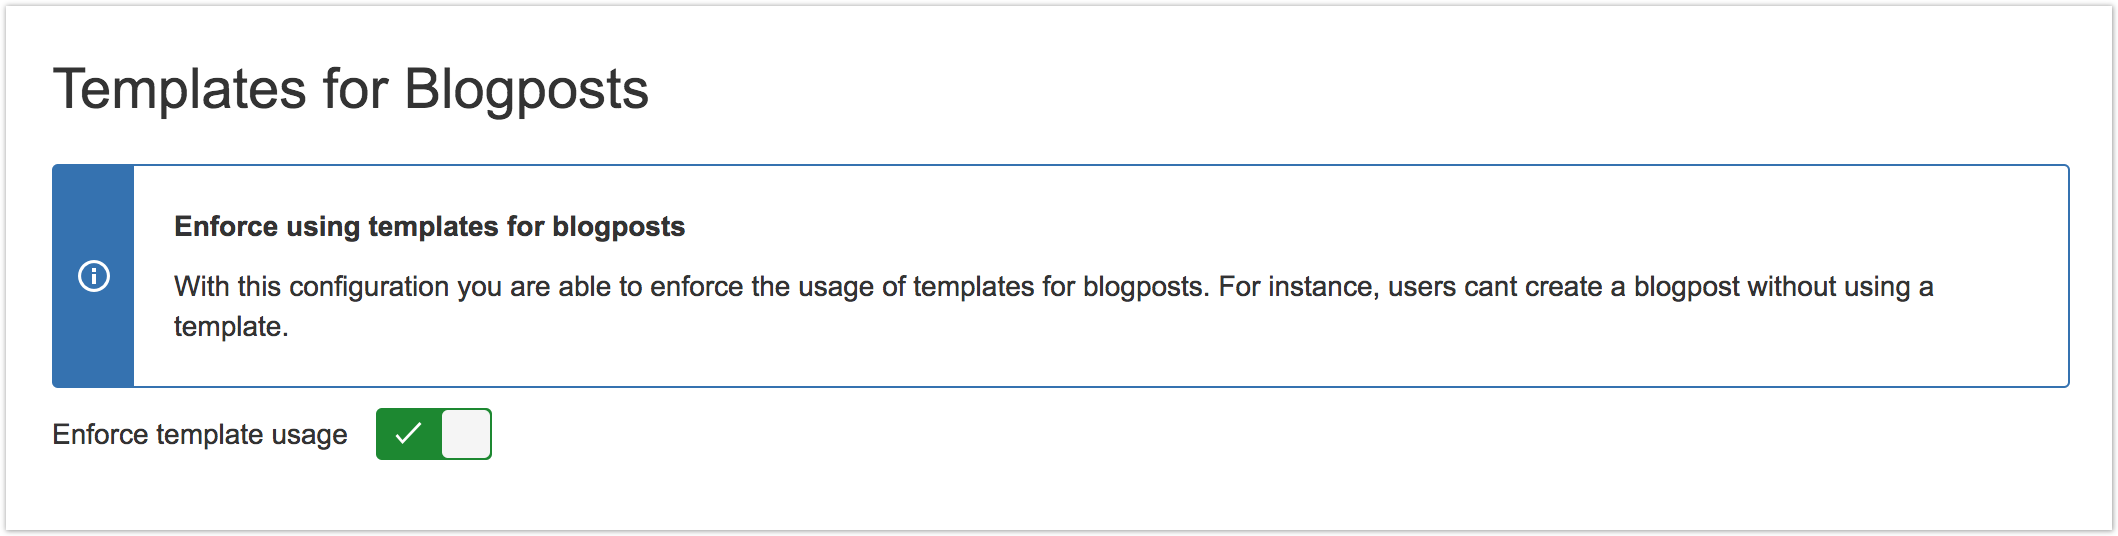 Enforce using templates for blog posts templates for for Confluence blog post template